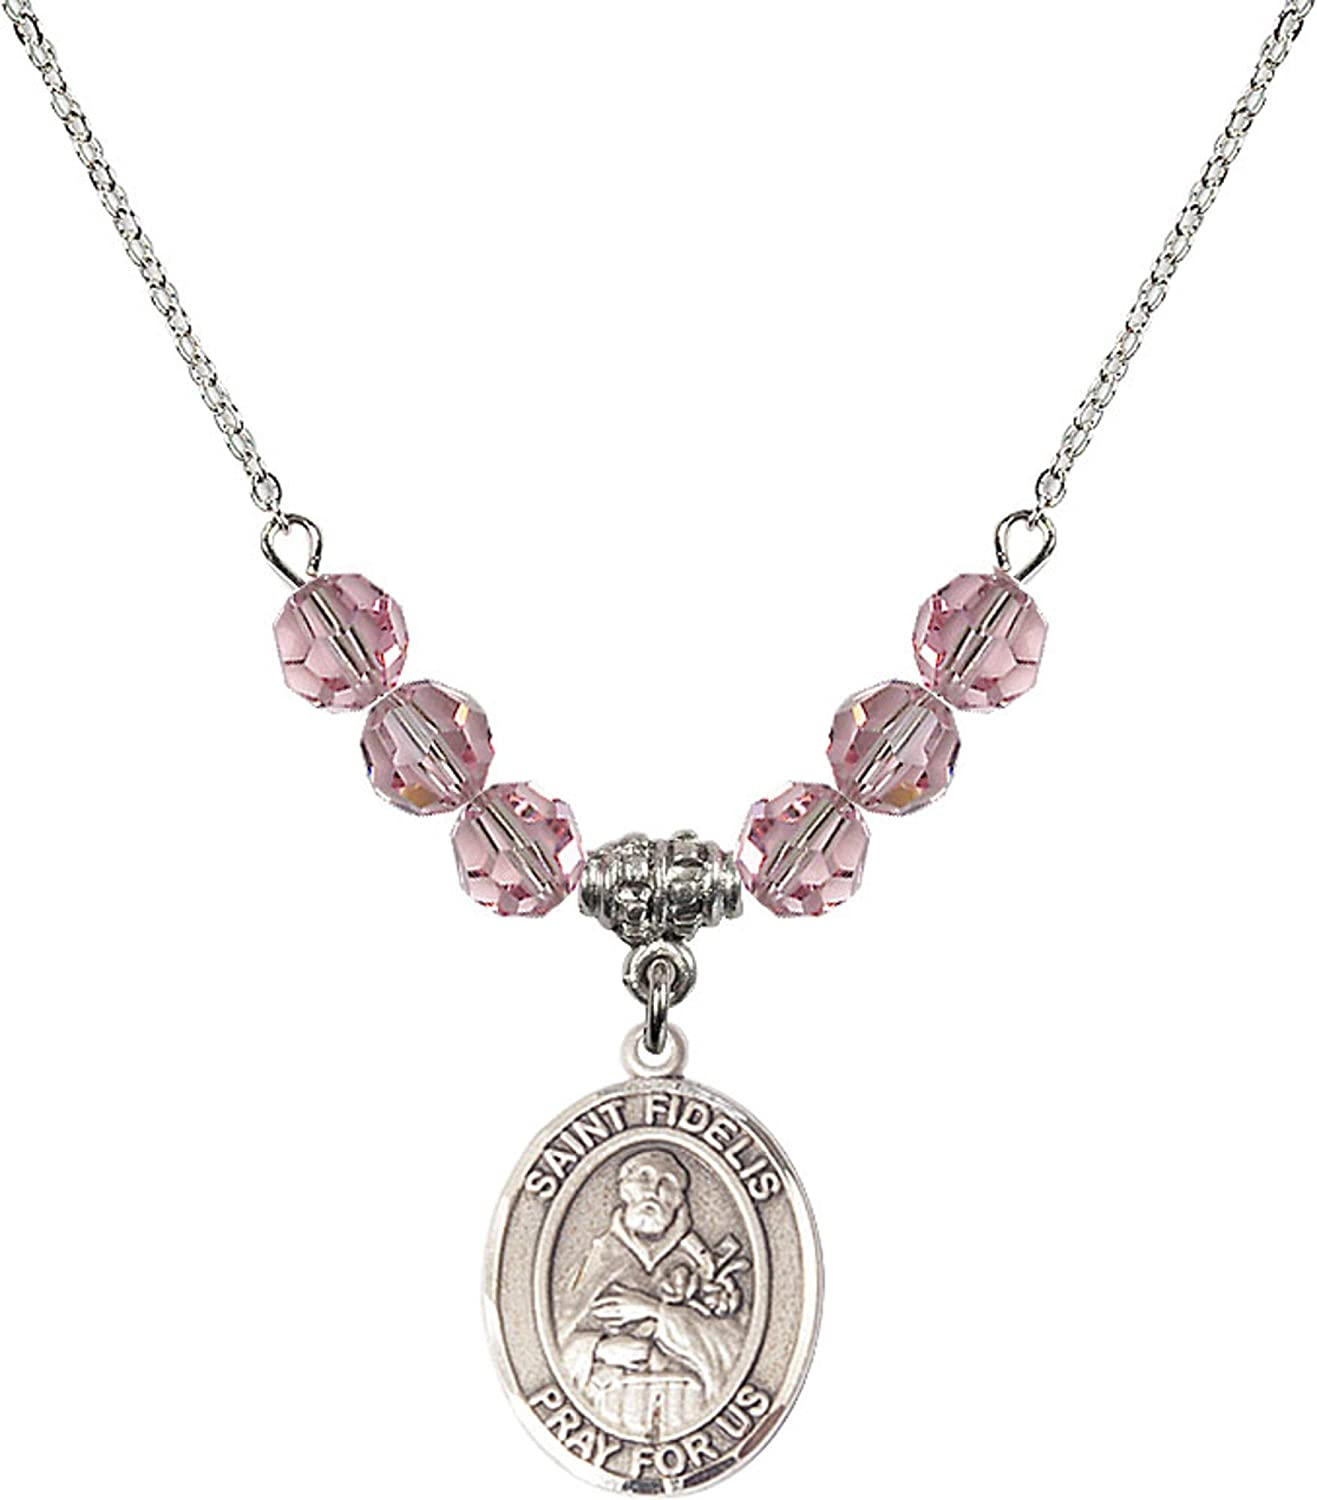 Bonyak Jewelry 18 Inch Rhodium Plated Necklace w// 6mm Light Rose Pink October Birth Month Stone Beads and Saint Fidelis Charm